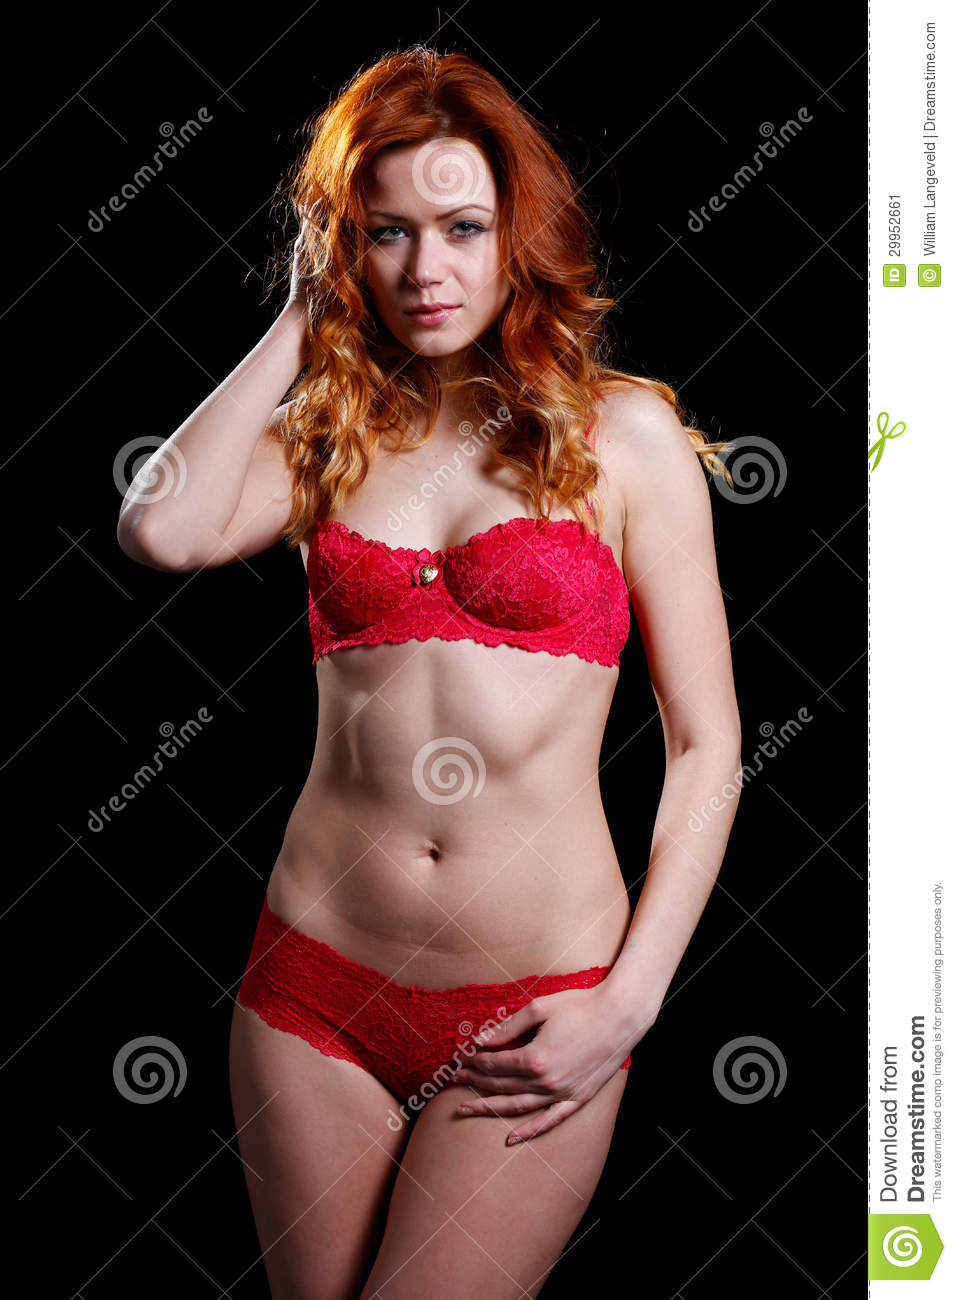 very beautiful woman with red hair in red lingerie stock